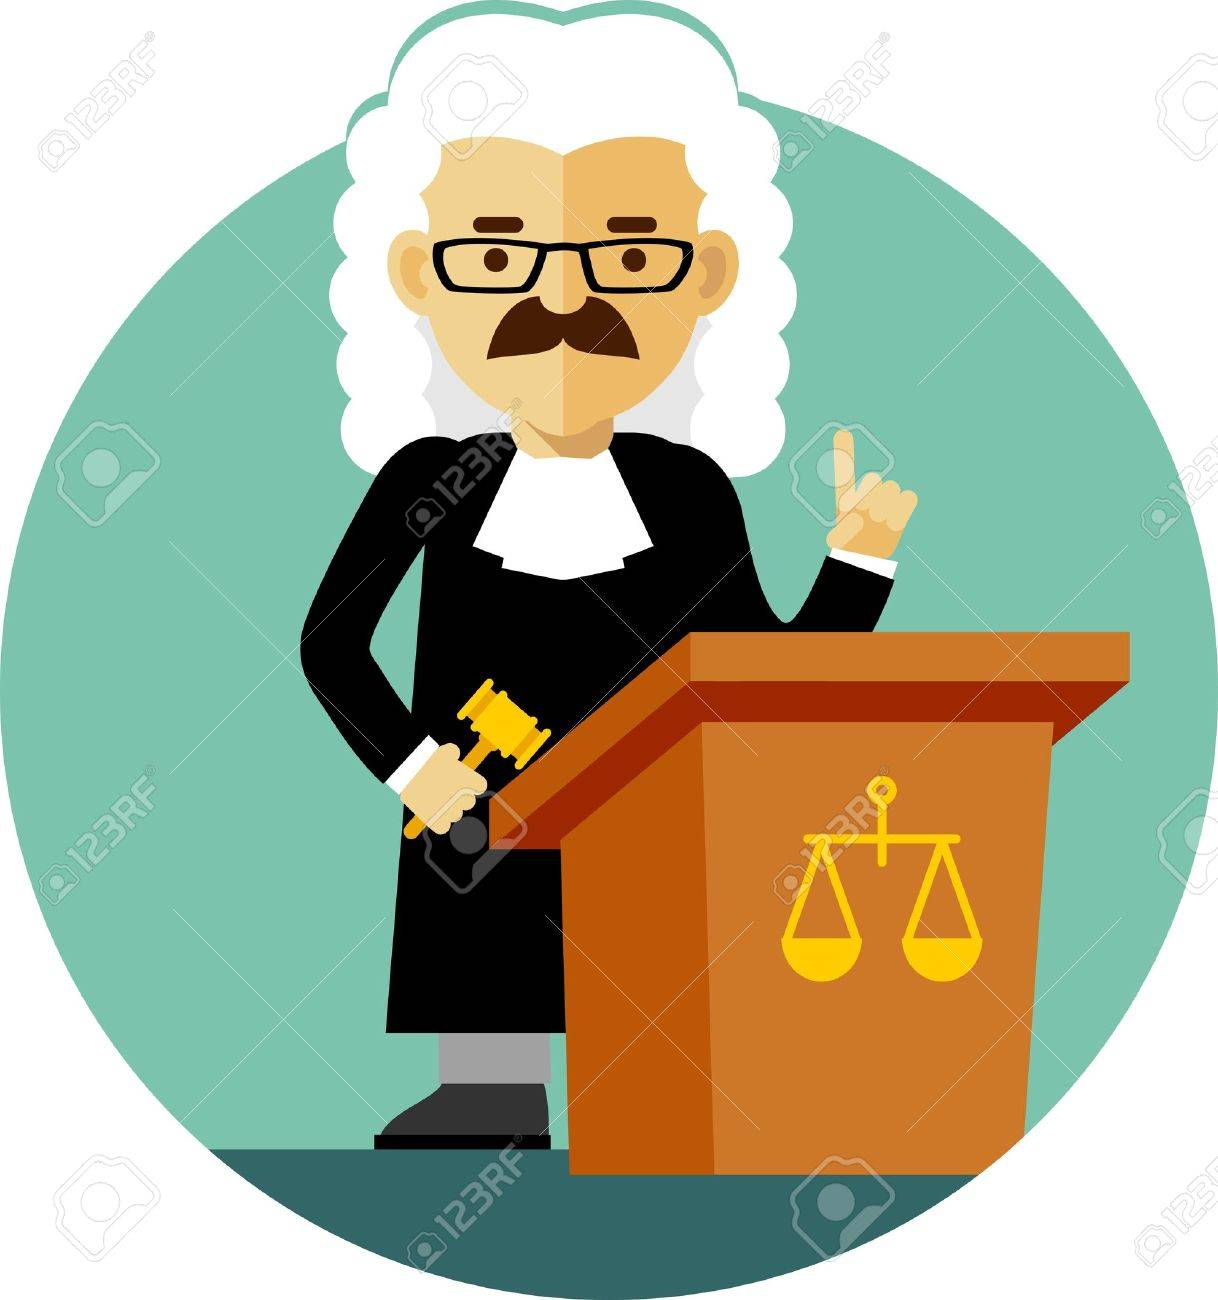 Judge Concept In A Wig And Gown With A Gavel Royalty Free Cliparts ...